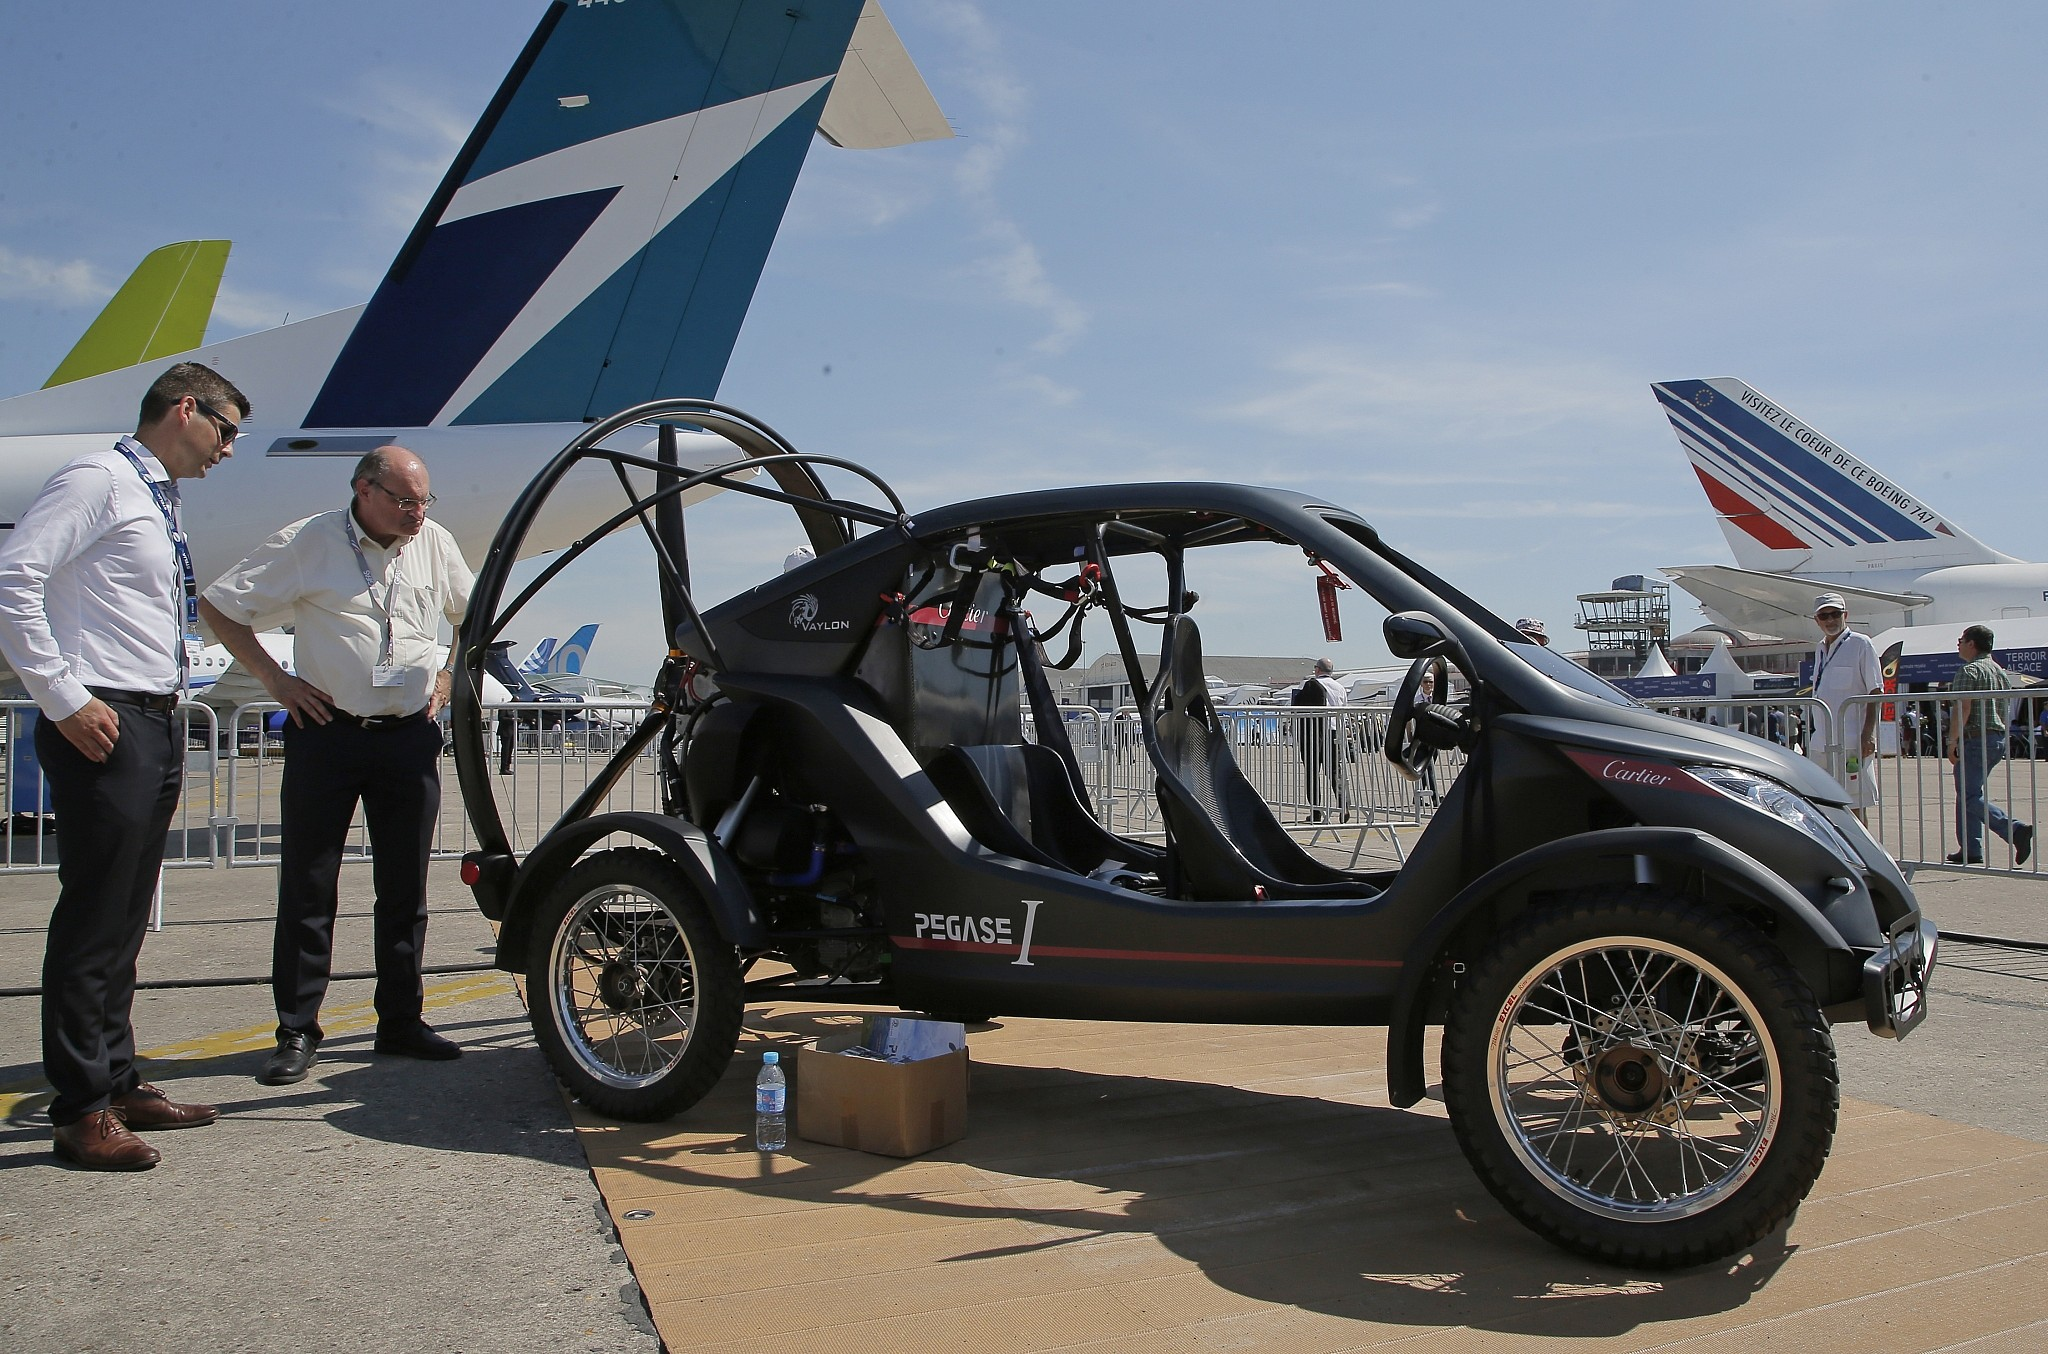 Israeli Company Leads Flying Car Buzz Ahead Of Major Tech Show The Times Of Israel